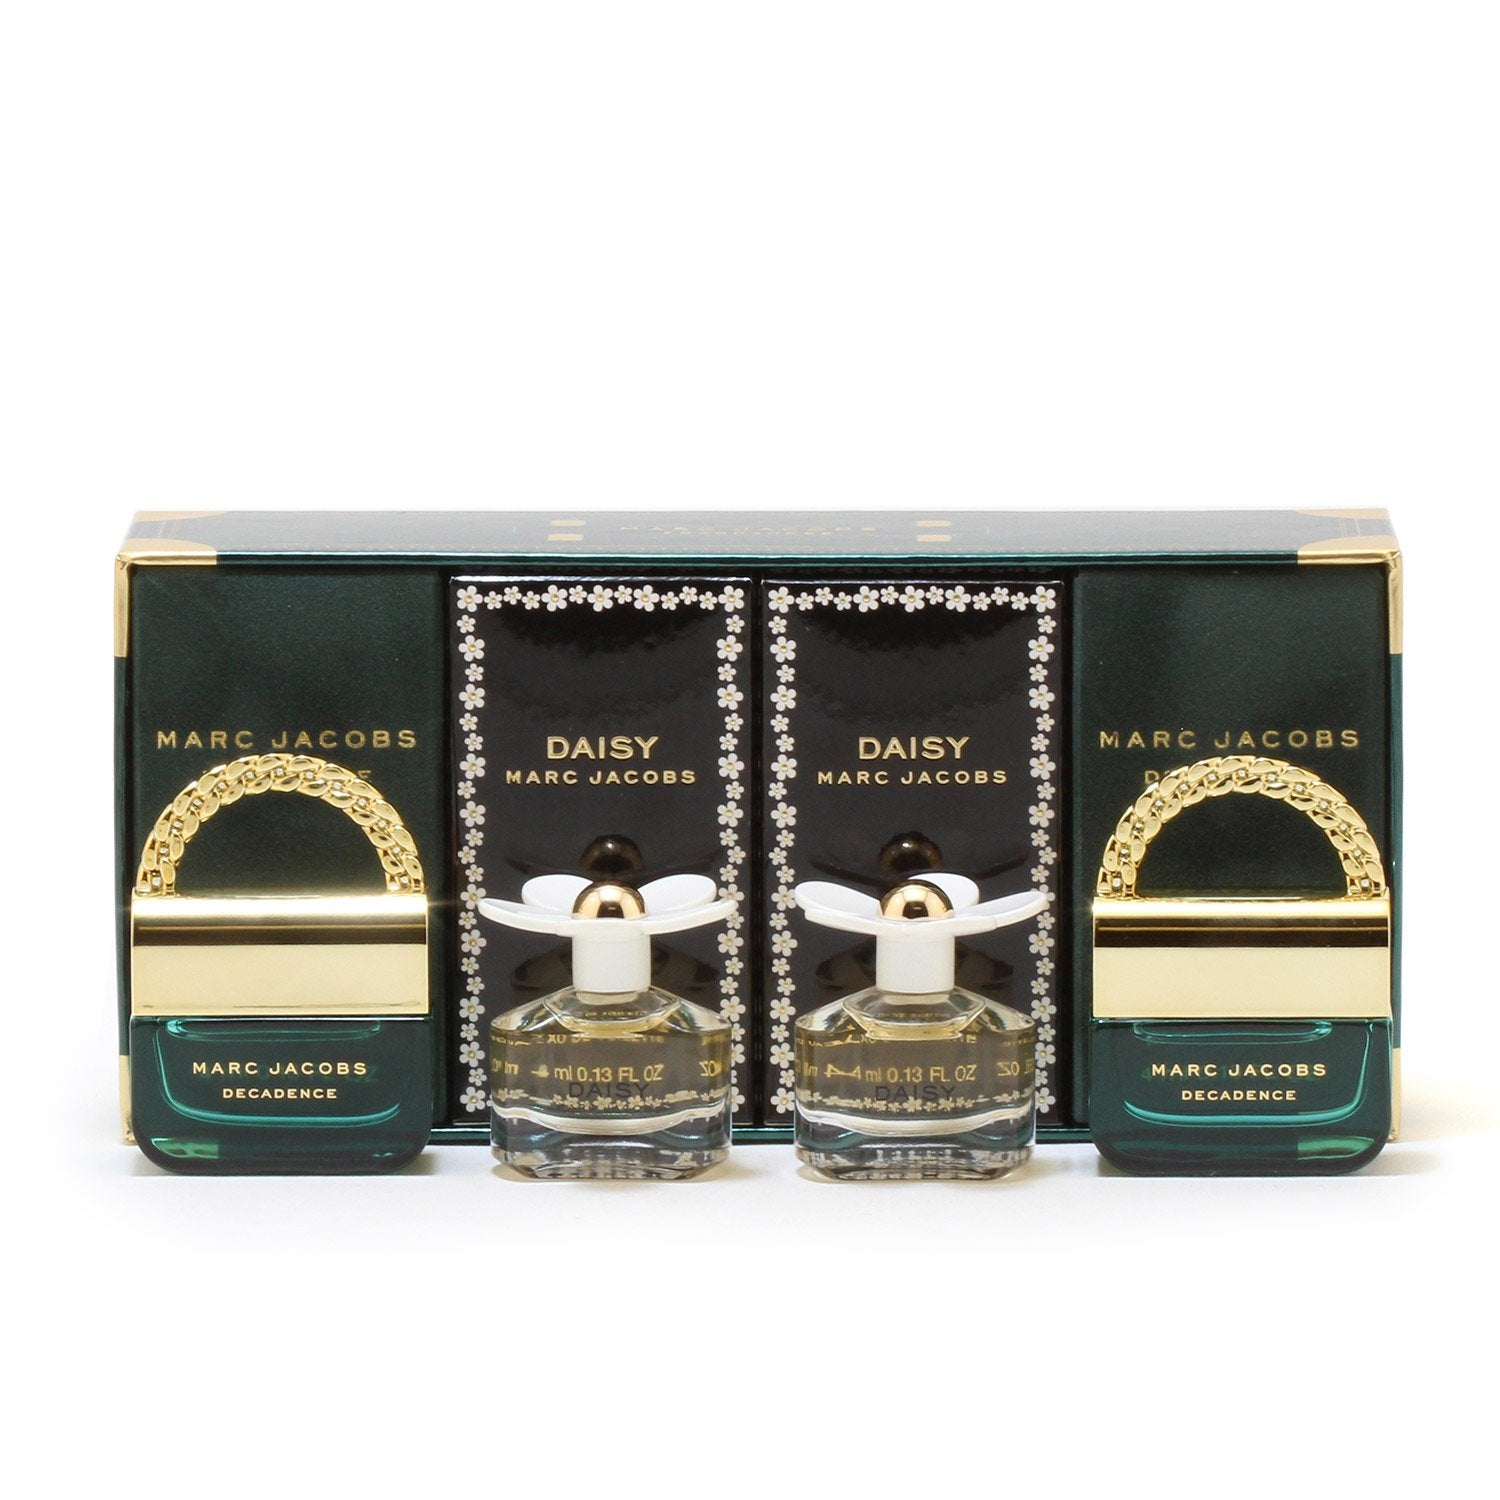 Perfume Sets - MARC JACOBS DAISY & DECADENCE FOR WOMEN - GIFT SET